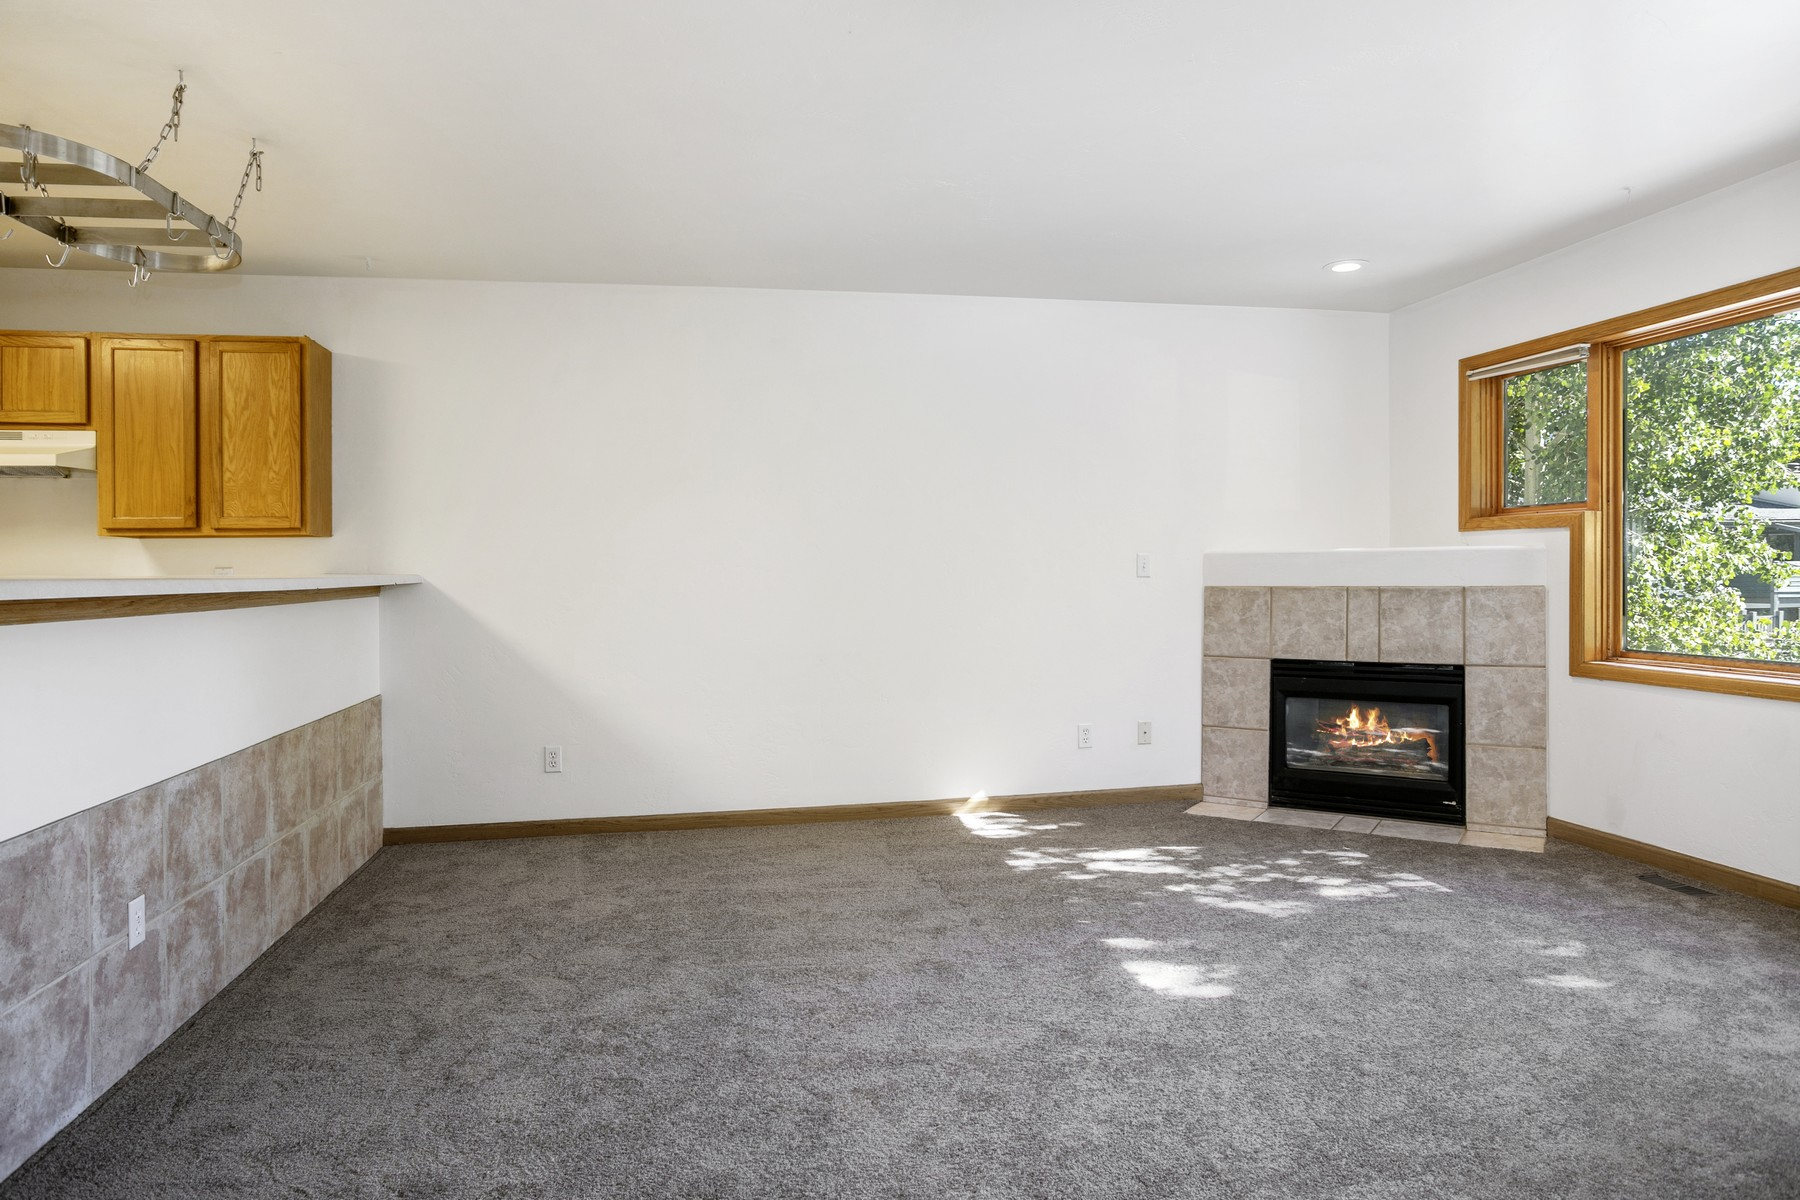 Additional photo for property listing at Greenbrier #C 22 217 W Beaver Creek Boulevard #C 22 Avon, Colorado 81620 United States